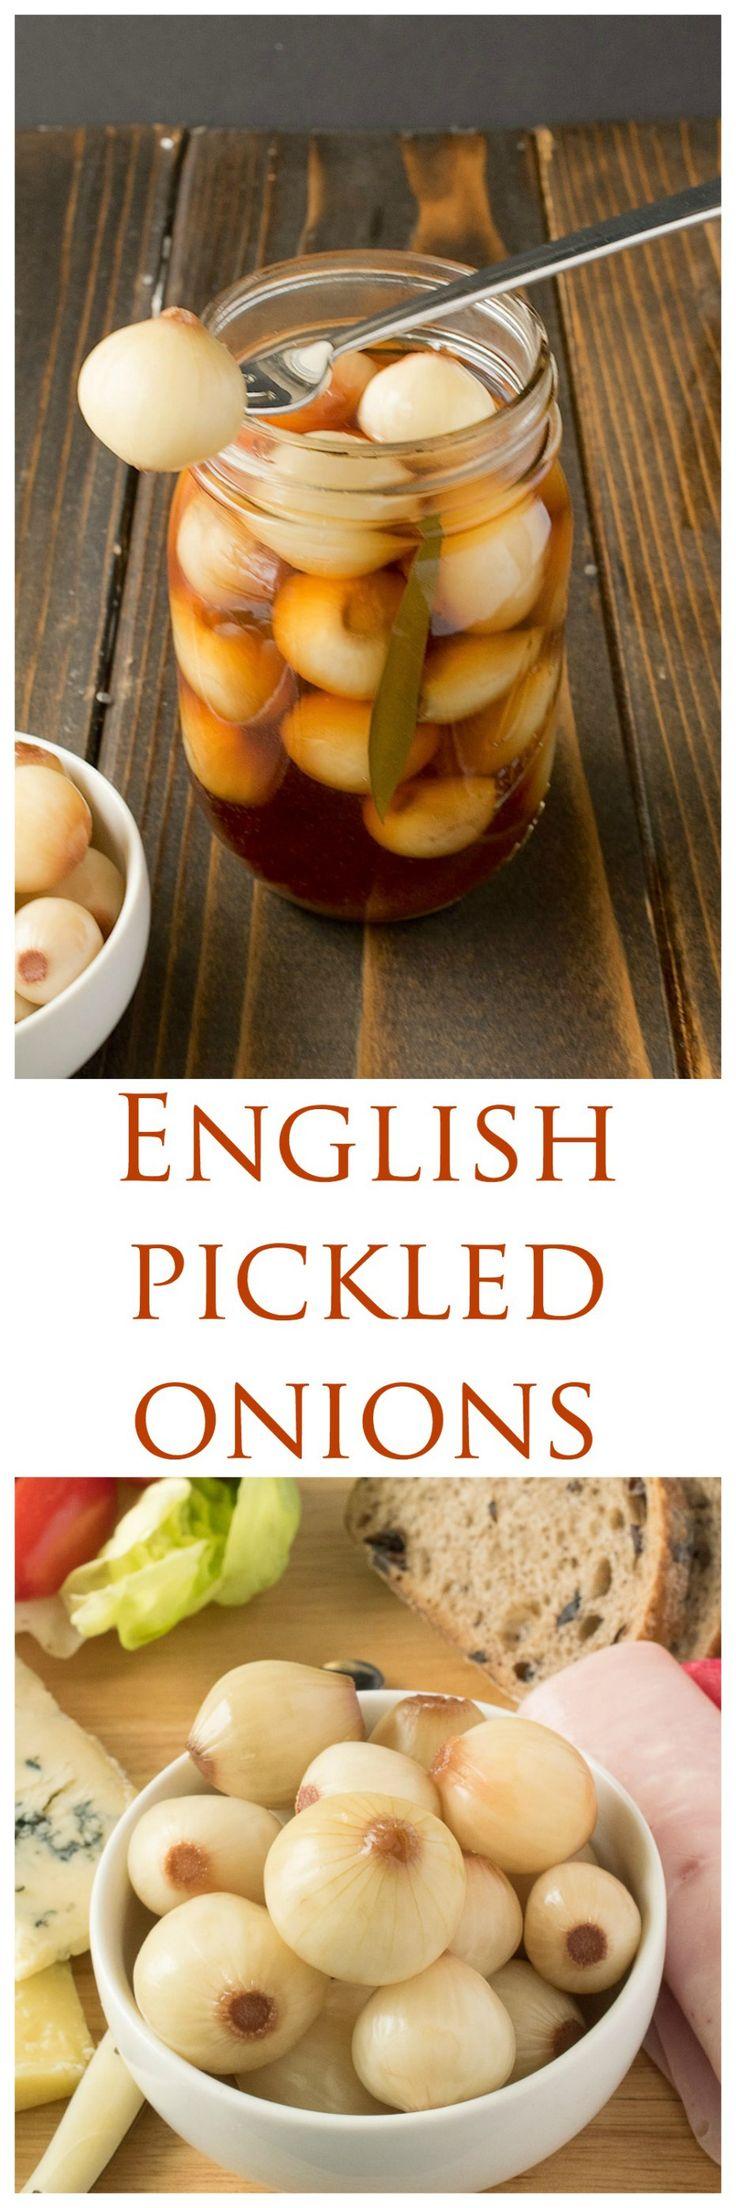 English pickled onions - Pearl onions are pickled in malt vinegar, sugar and spices for a tasty British snack